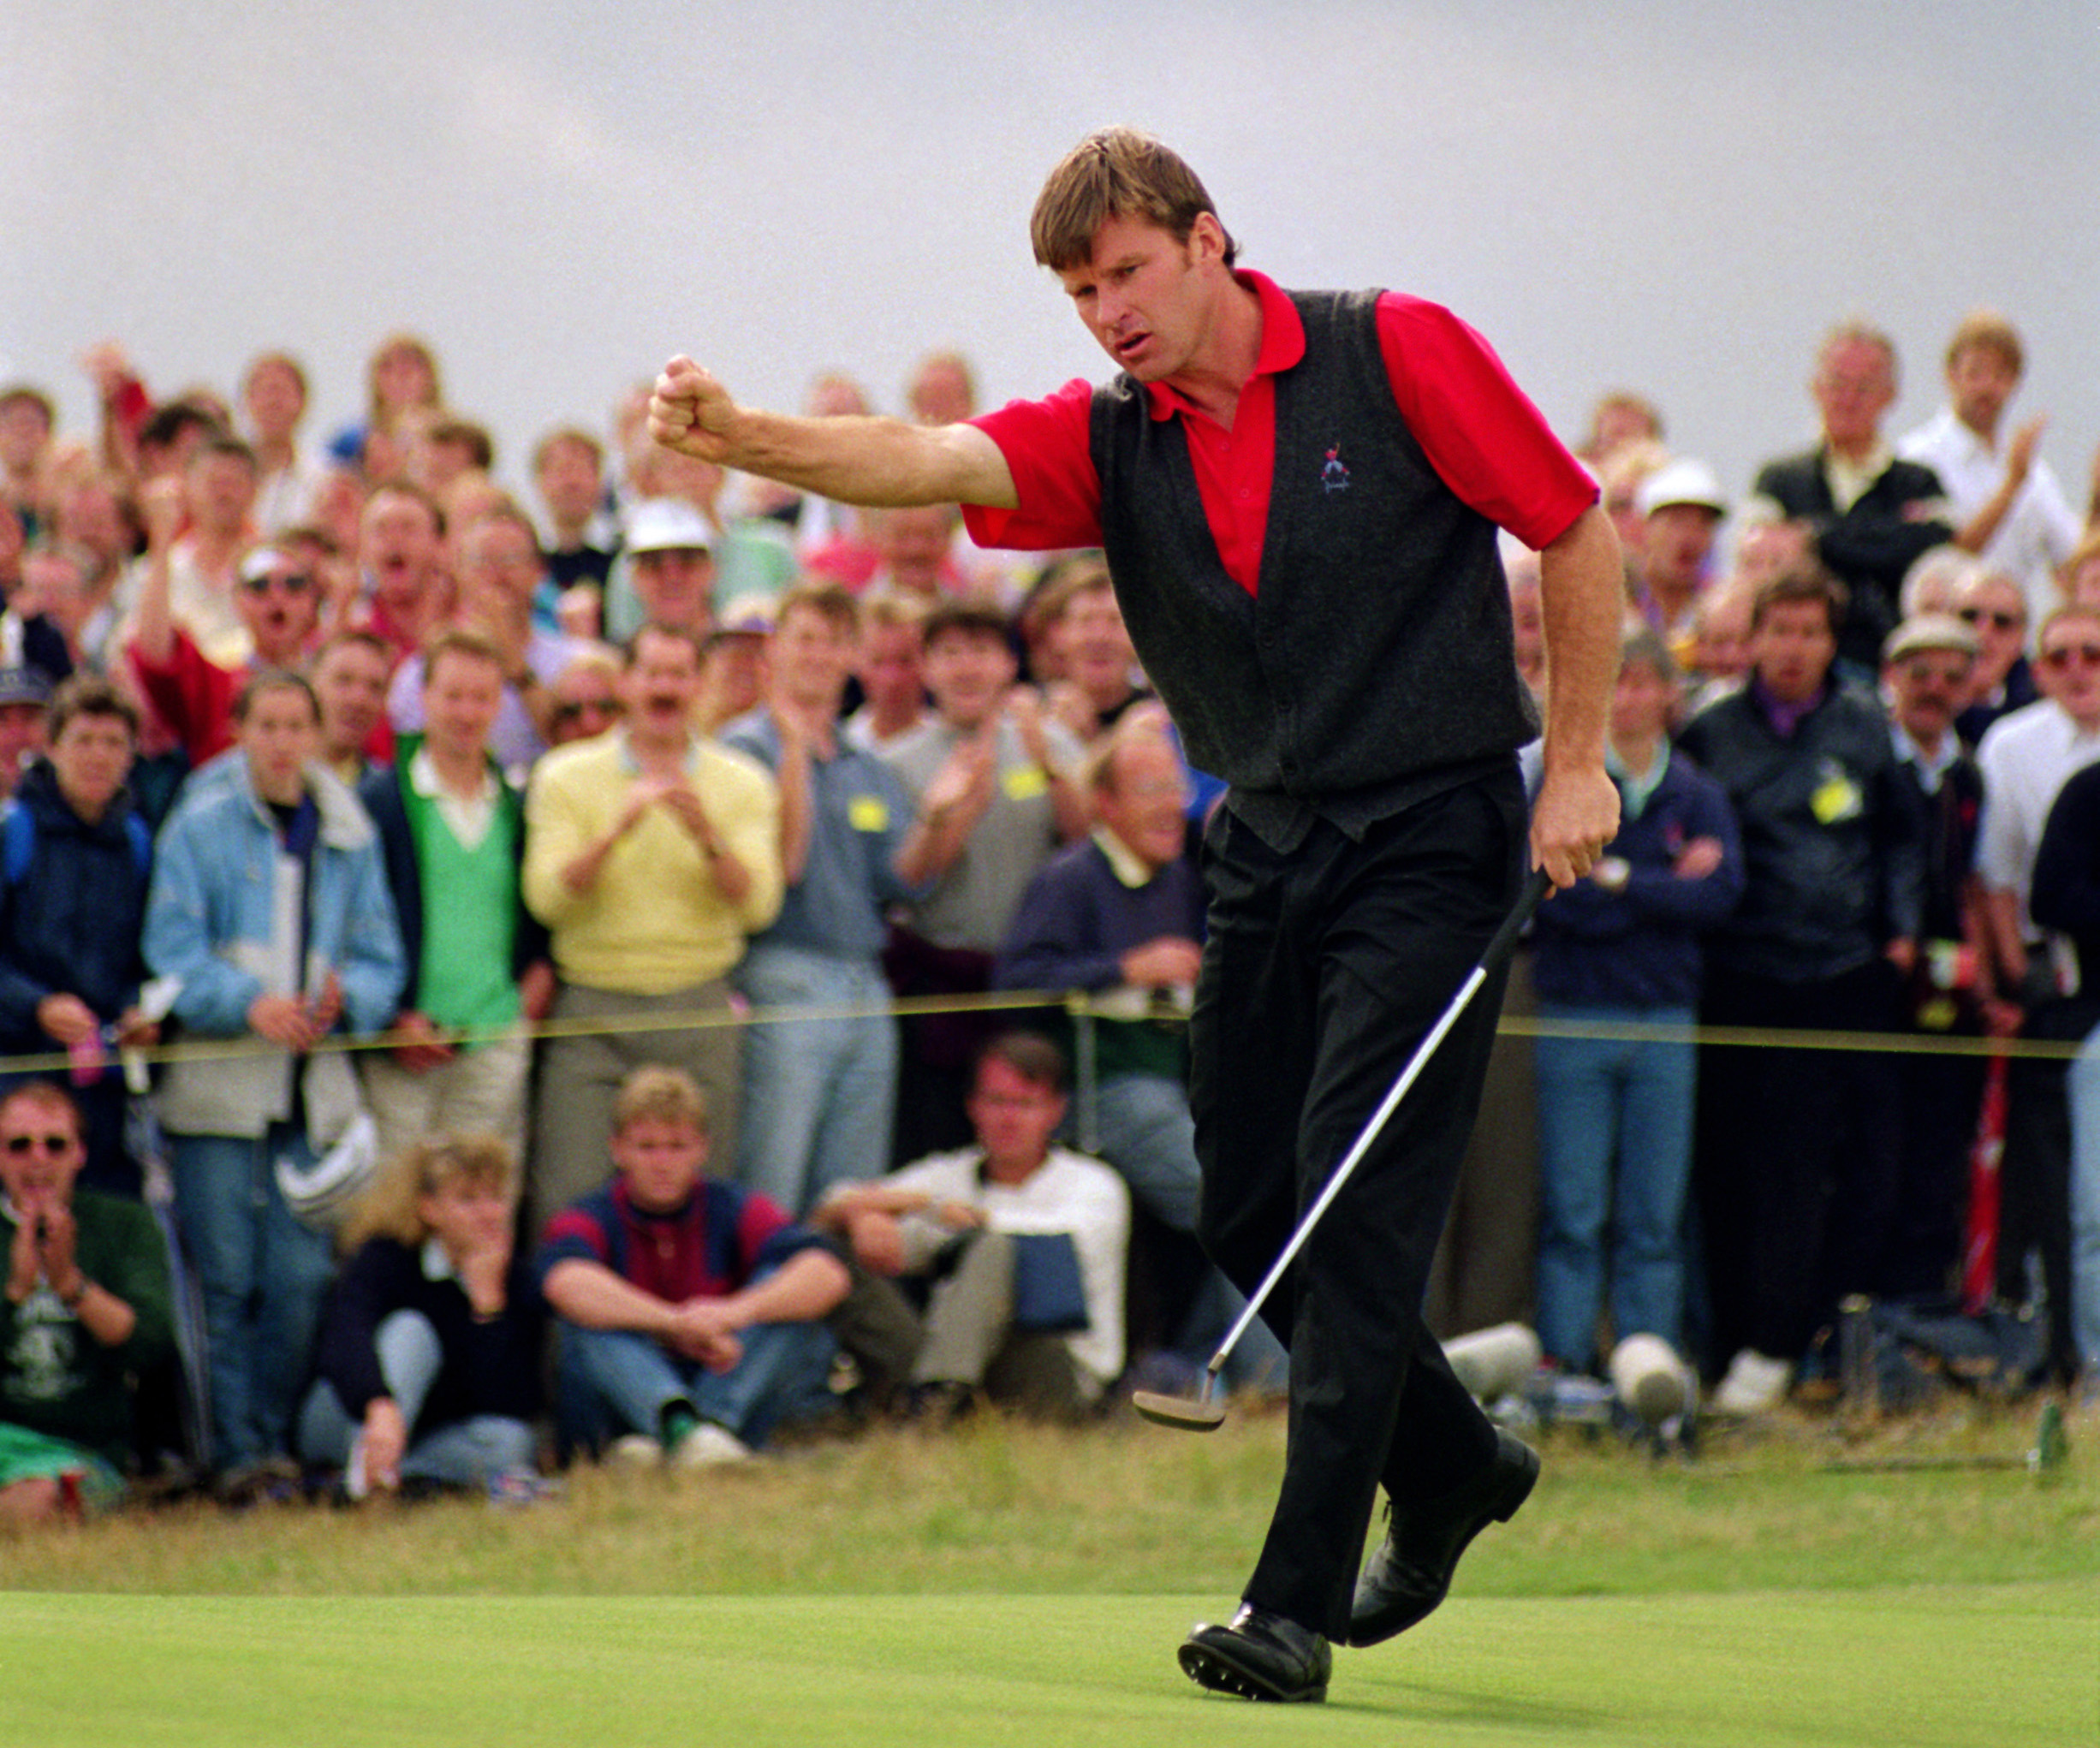 """His third and final Claret Jug came at Muirfield in 1992. Leading from the second round, Faldo went two behind John Cook after 14 holes on the final day before beating the American by one for his fifth major title. """"It is impossible to explain to outsiders the mental torture I endured that Sunday afternoon,"""" he wrote in his autobiography. (Photo: Getty Images)"""